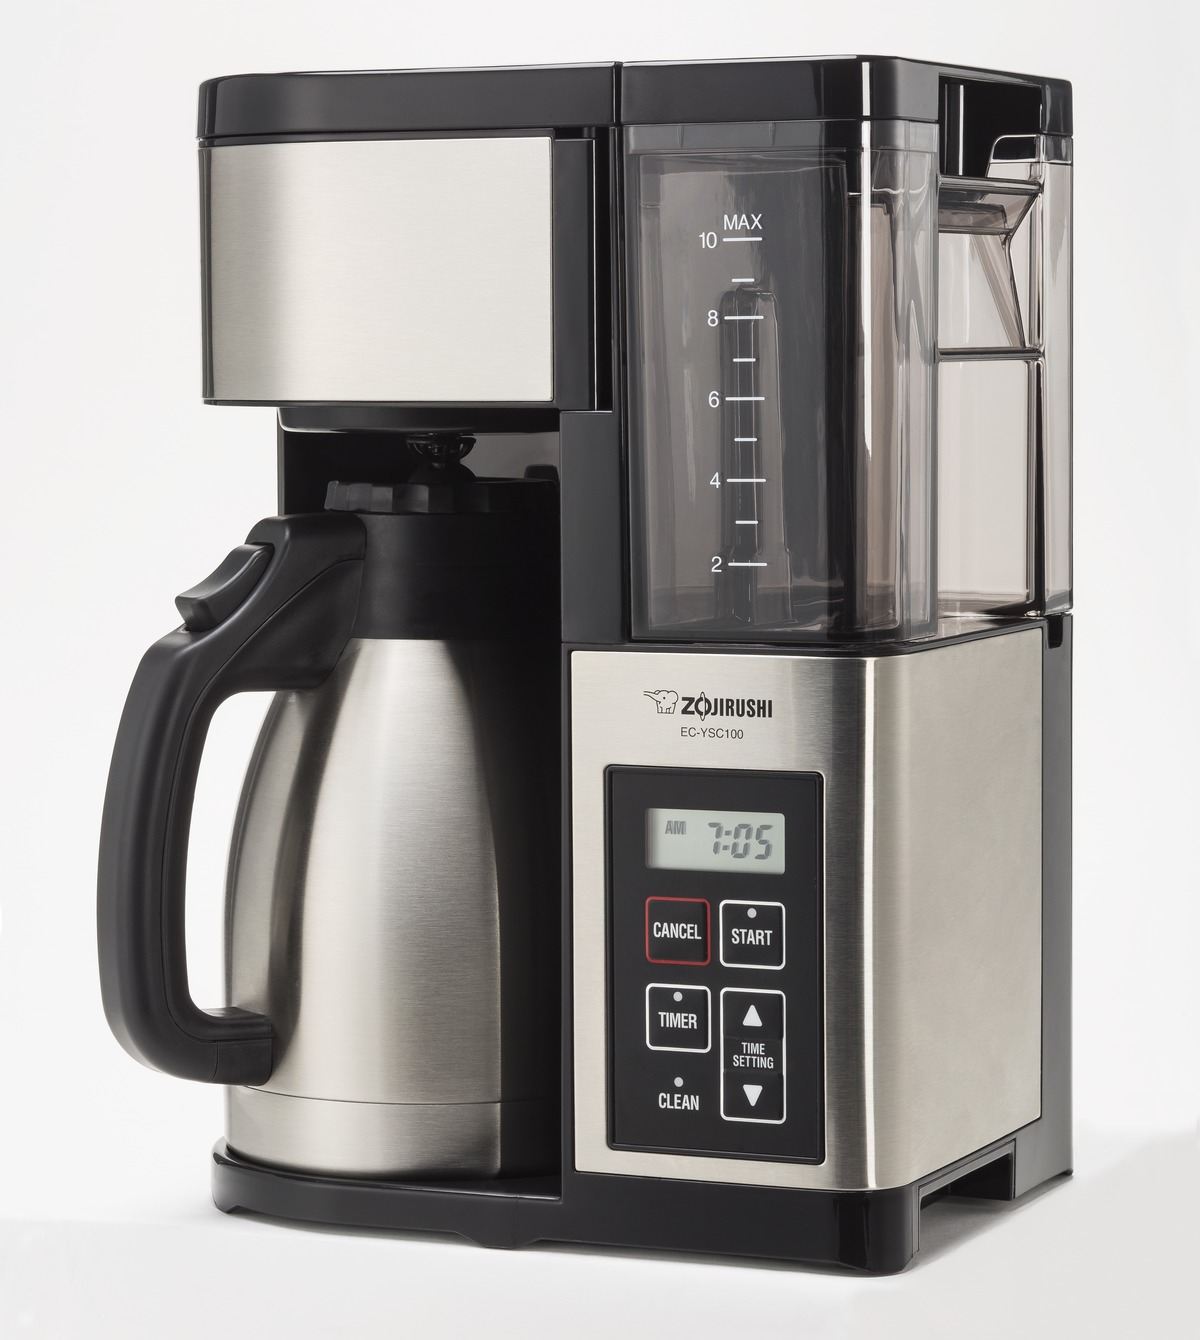 Coffeemaker wikipedia How to make coffee with a coffee maker